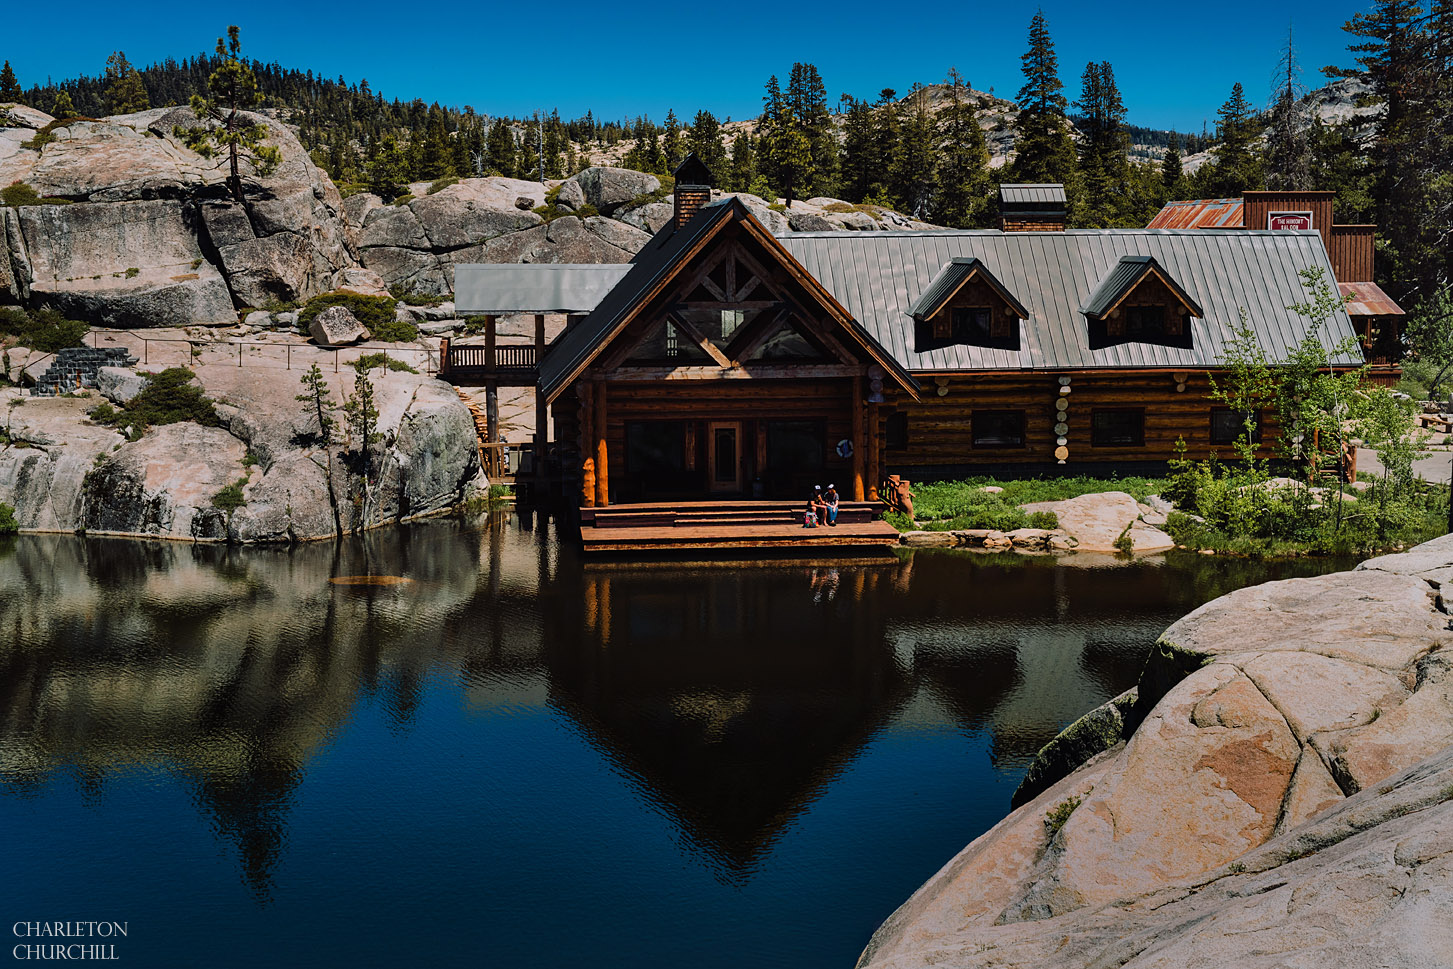 rustic lodge off grid weddings in the forests of california with a lake and lodge or cabin